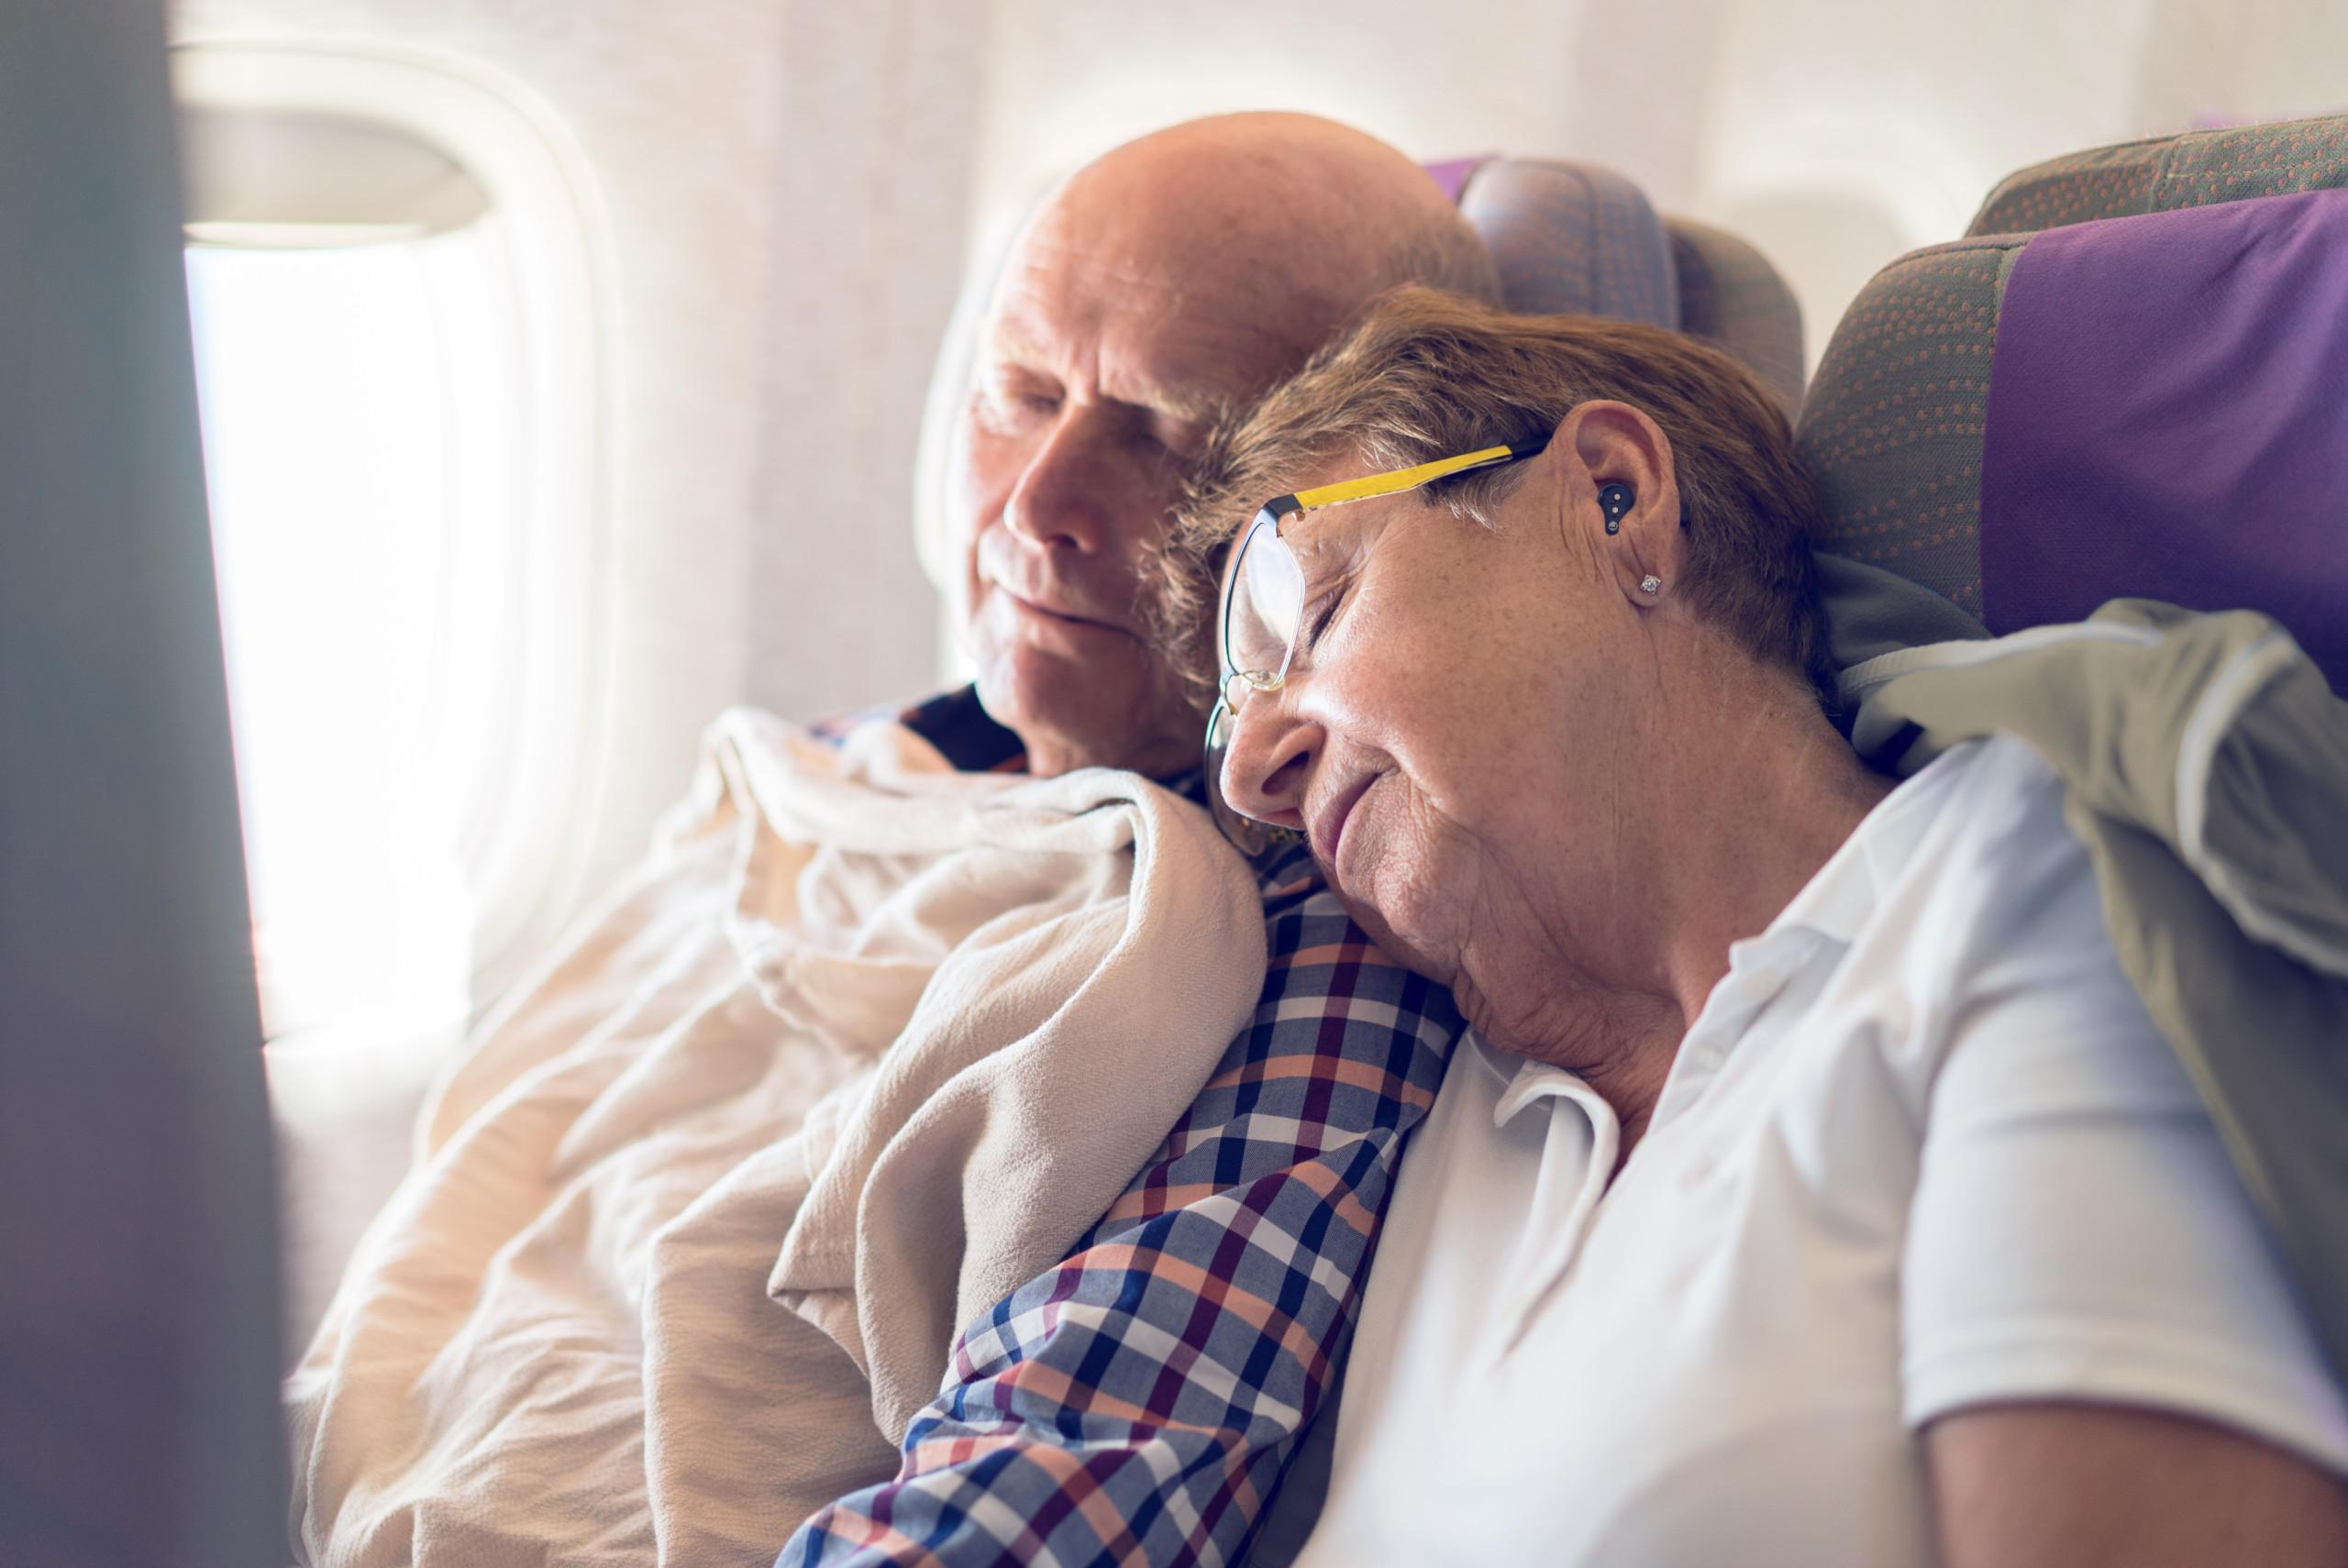 inflight - senior couple tourists in their seventies sleeping in airplane seat together with earbuds